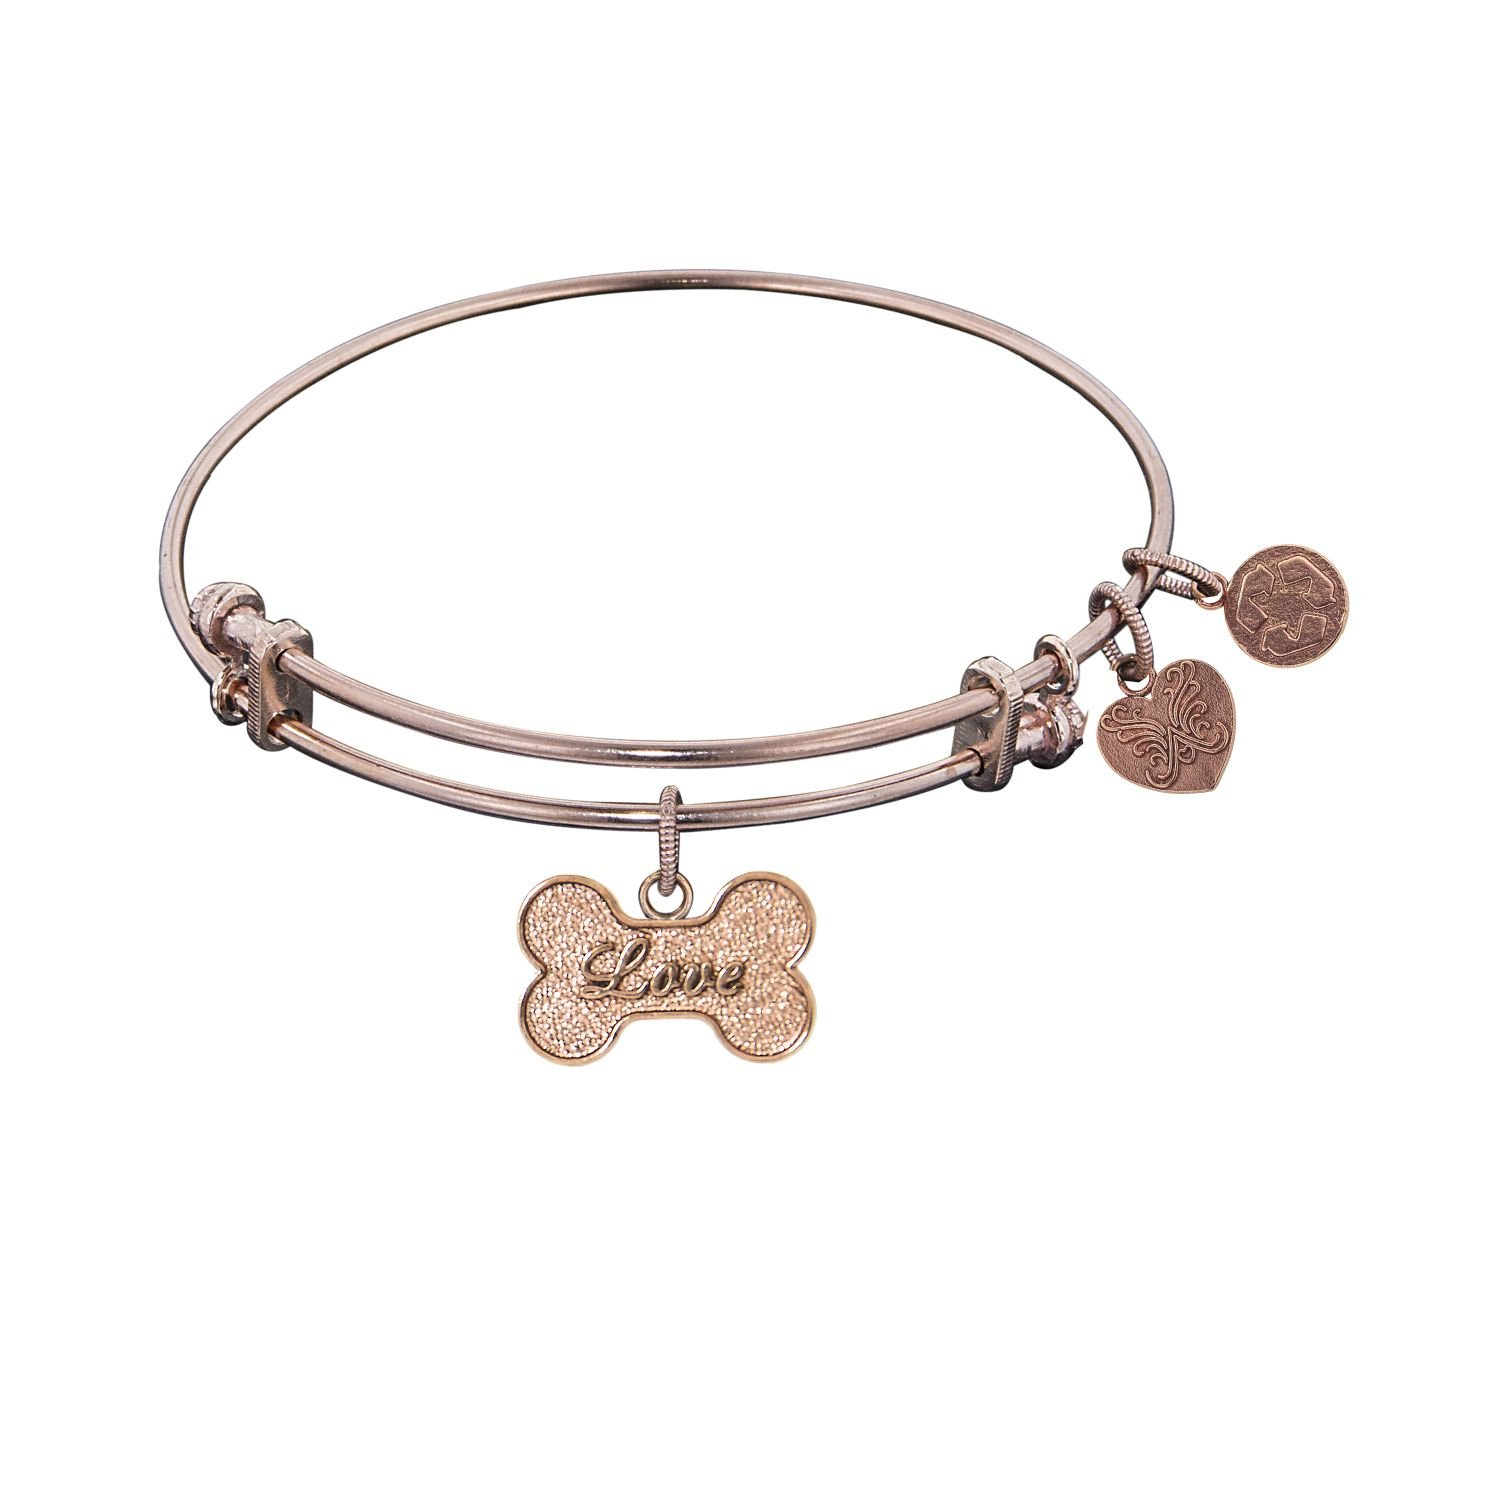 Angelica Ladies Love /& Hearts Collection Bangle Charm 7.25 Inches PGEL1015 Adjustable